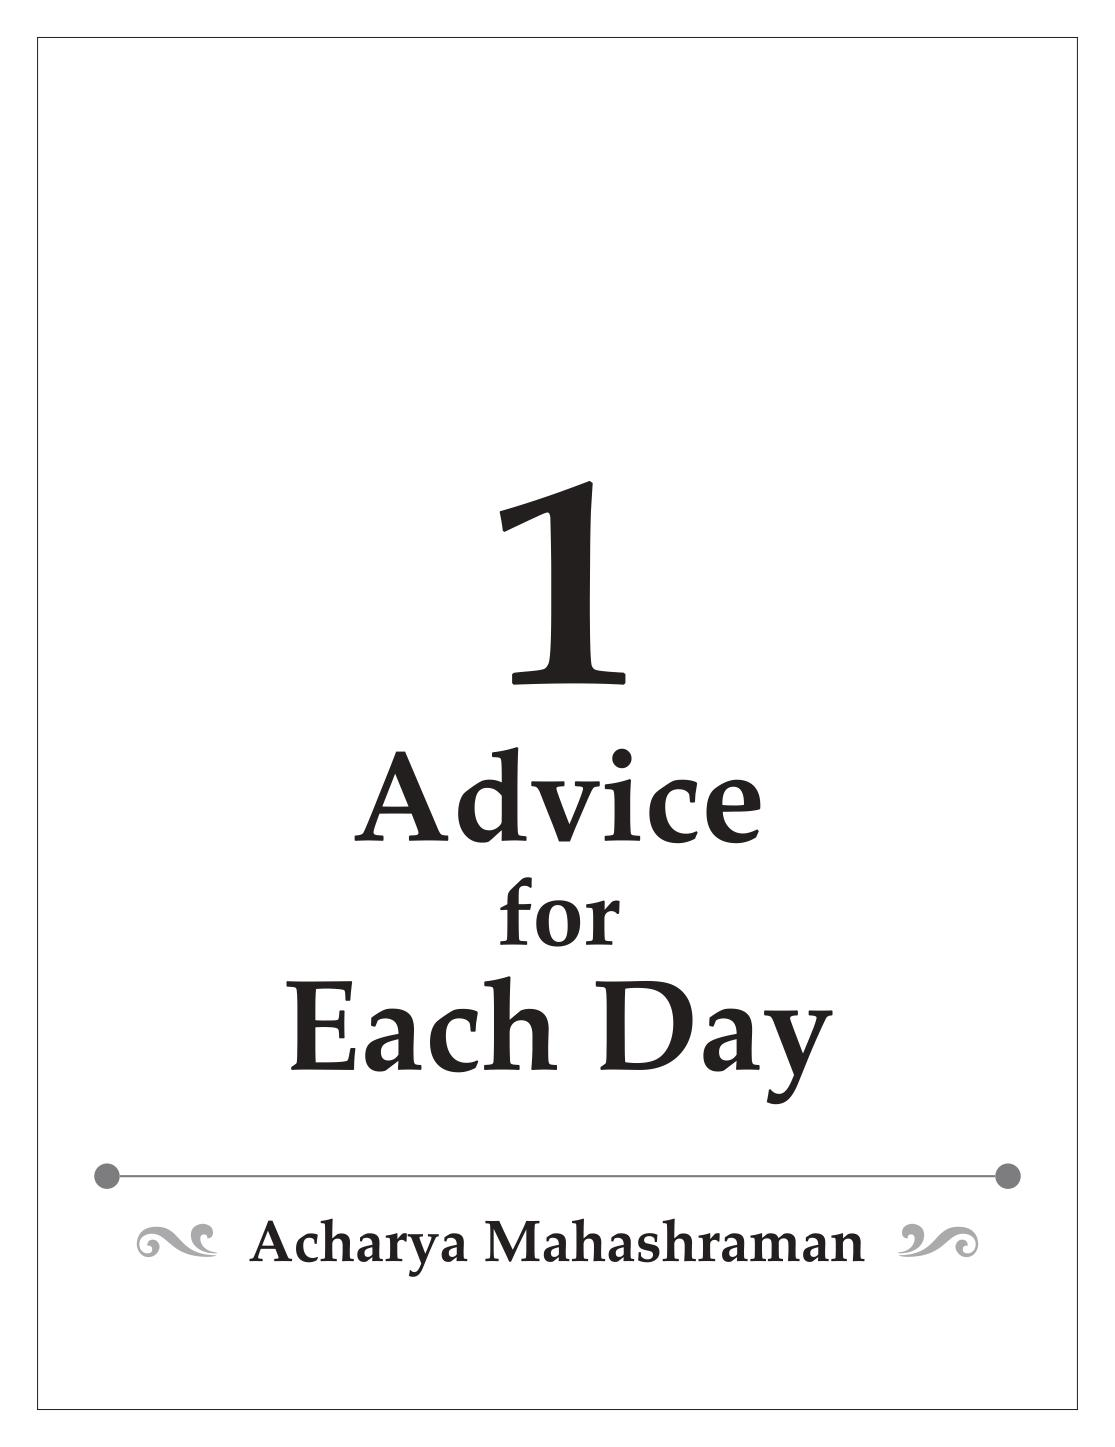 http://www.herenow4u.net/fileadmin/_files2017/Books_online/Advice_for_Each_Day_-_Acharya_Mahashraman/0001.jpg